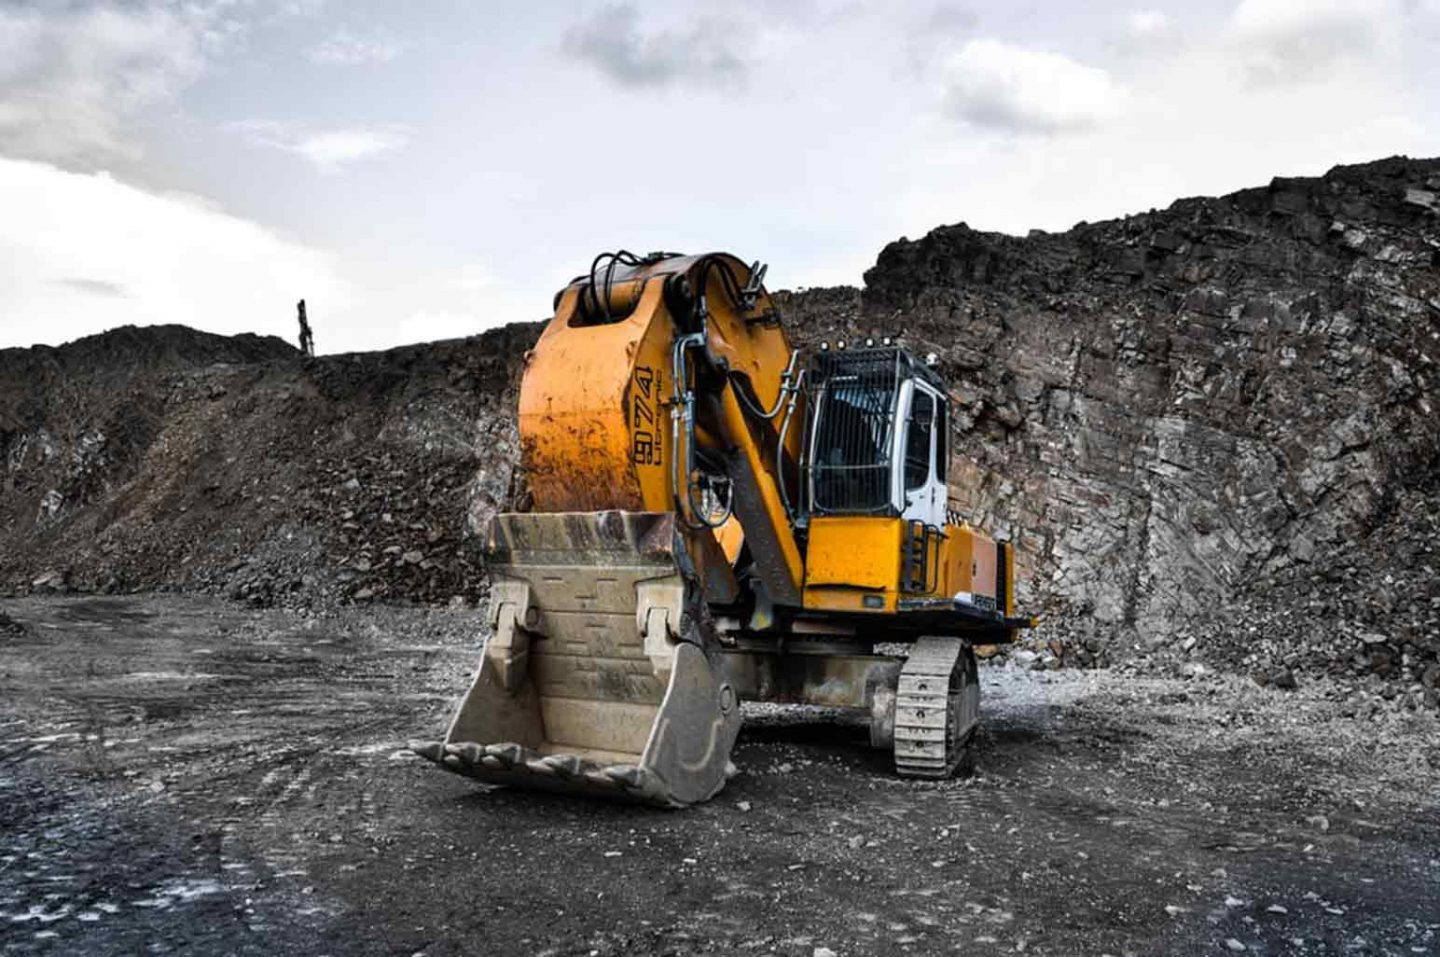 Finding The Right Equipment For Your Company